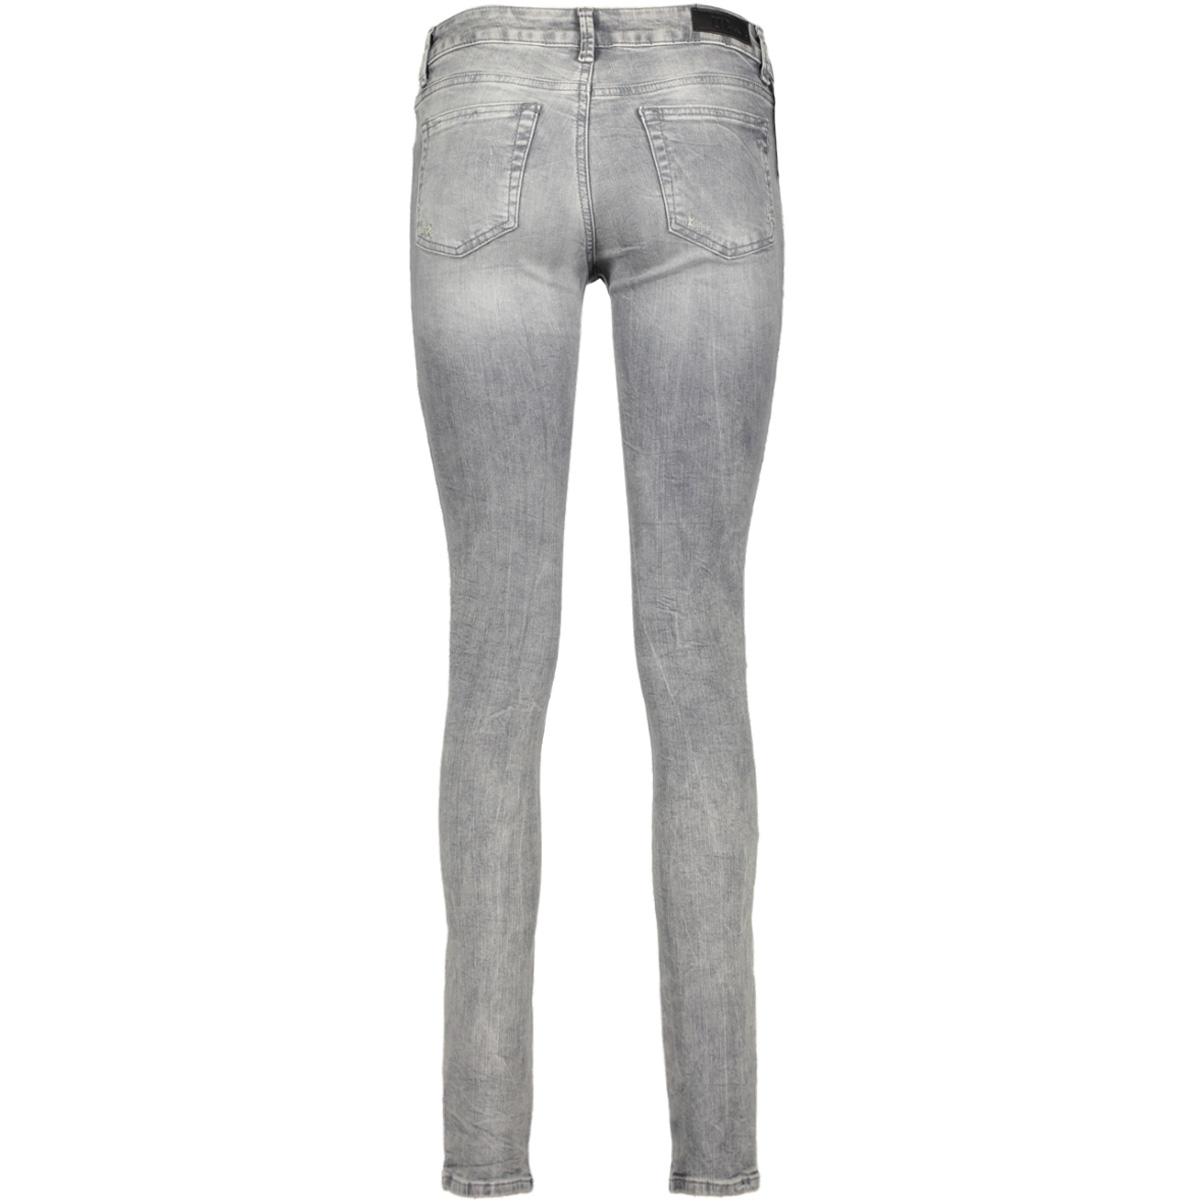 100950976.13803 ltb jeans silvermoon wash